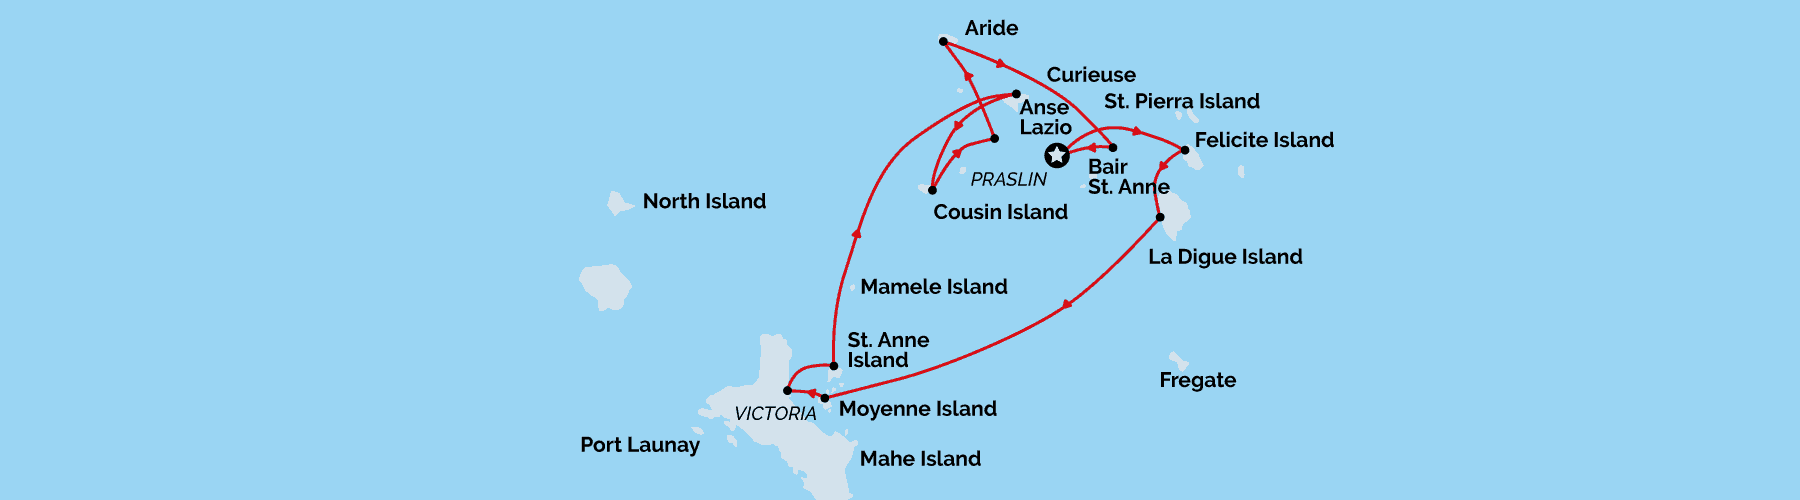 Seychelles cruising map, Unforgettable Cruises